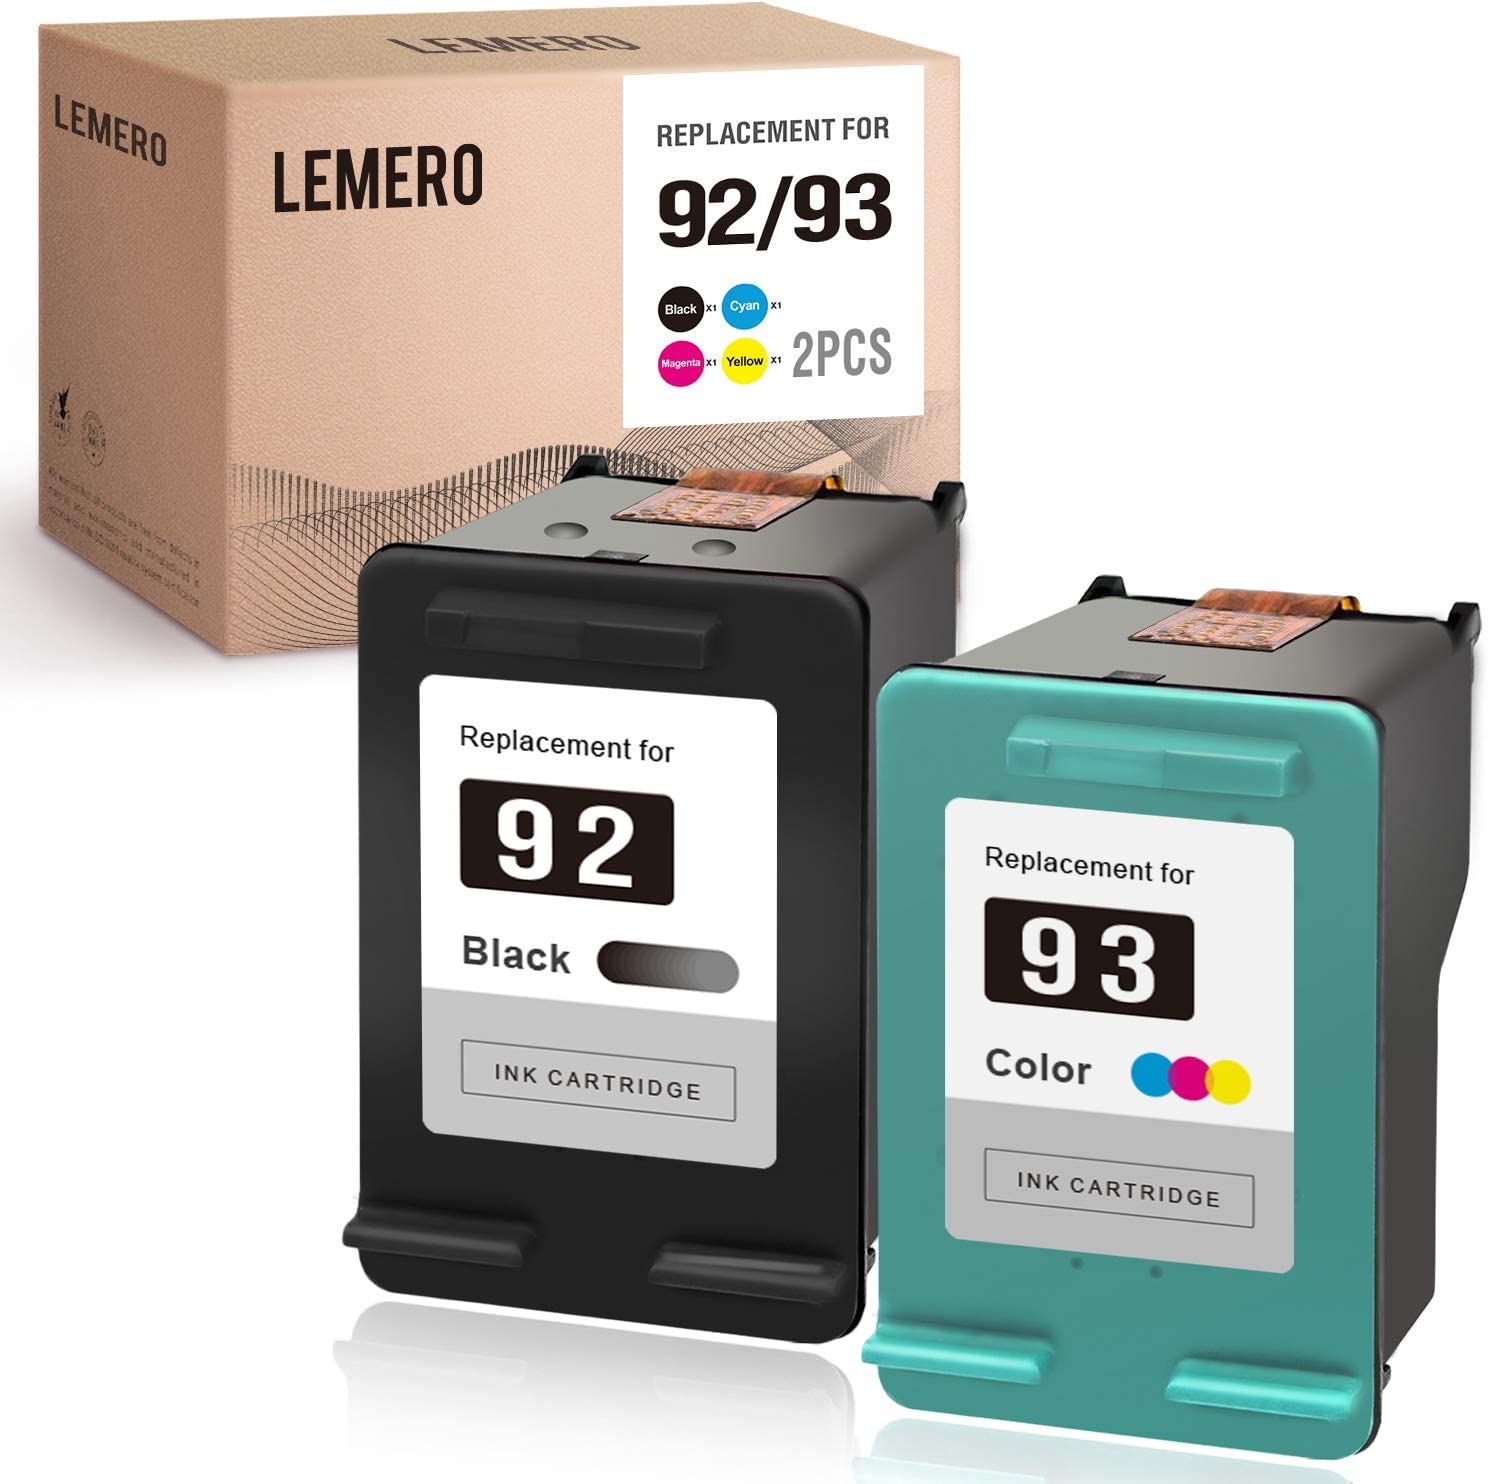 LEMERO Remanufactured Ink Cartridges Replacement for HP 92 93 C9362WN C9361WN to use with DeskJet 5440 5420 PSC 1510 1507 PhotoSmart 7850 C3100 C3110 C3125 (1 Black 1 Tri-Color)